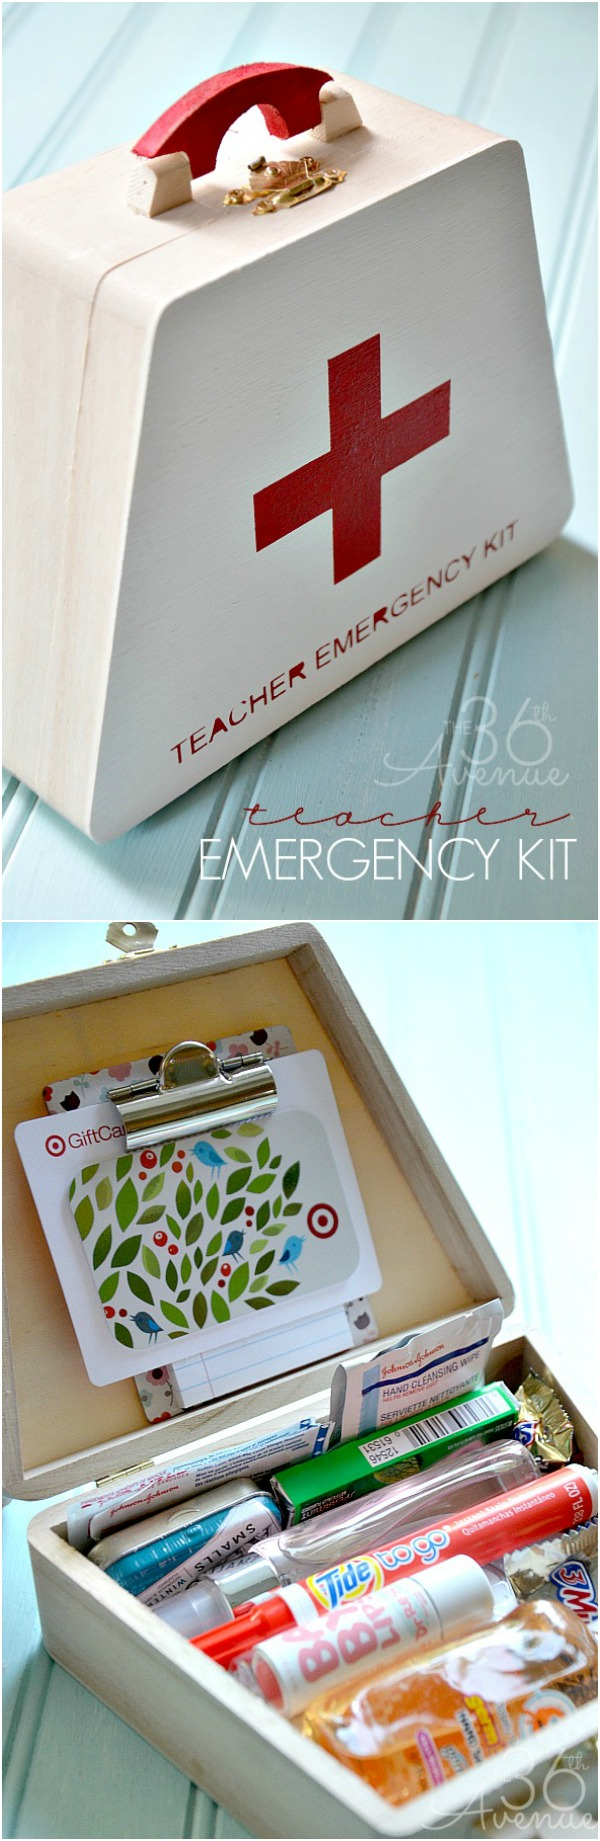 Emergency Kit Gift Idea Perfect For Teachers Friends And S The36thavenue